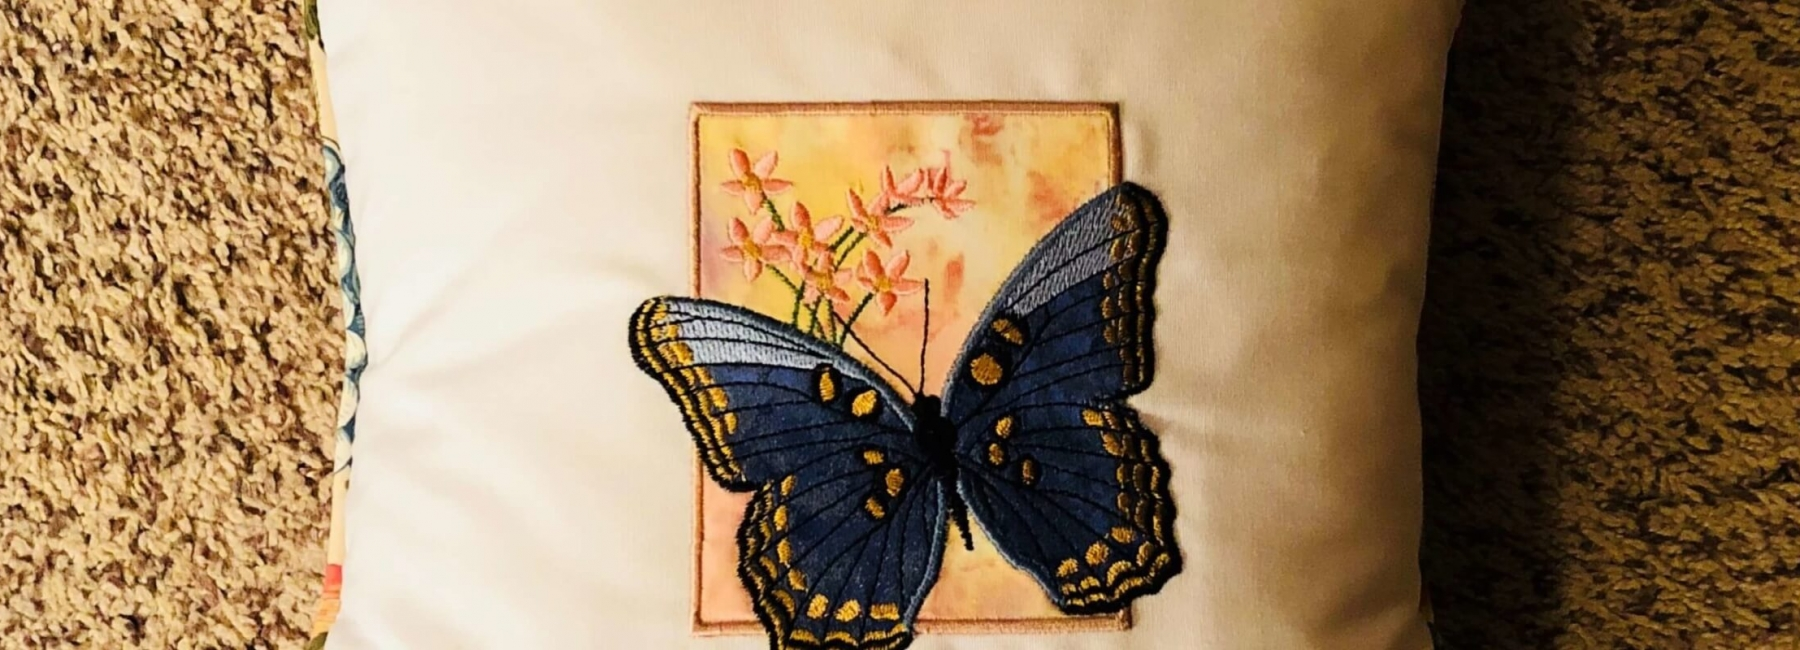 Pillow-butterfly-1-scaled-2400x800_c